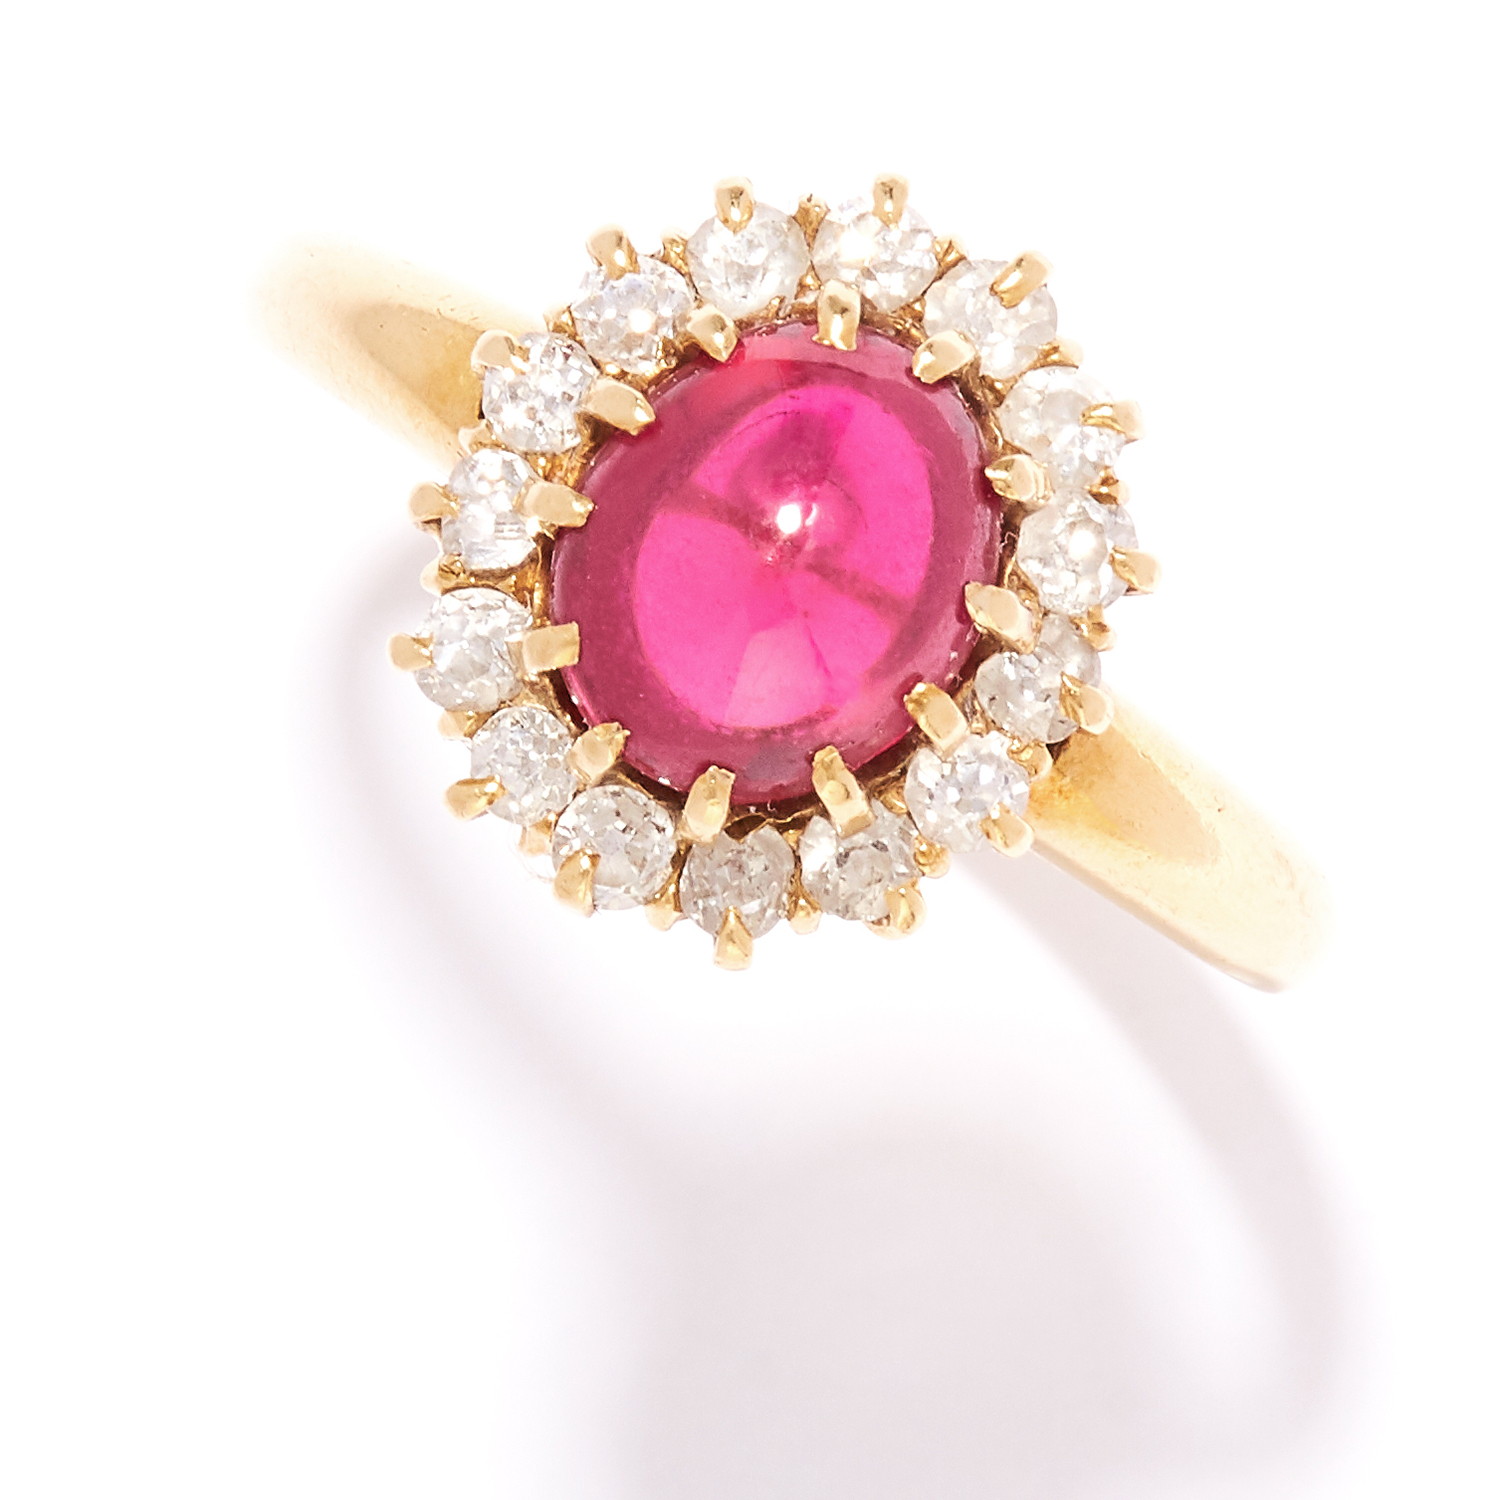 Los 46 - ANTIQUE RUBY AND DIAMOND RING, EARLY 20TH CENTURY in 18ct yellow gold, comprising of a cabochon ruby